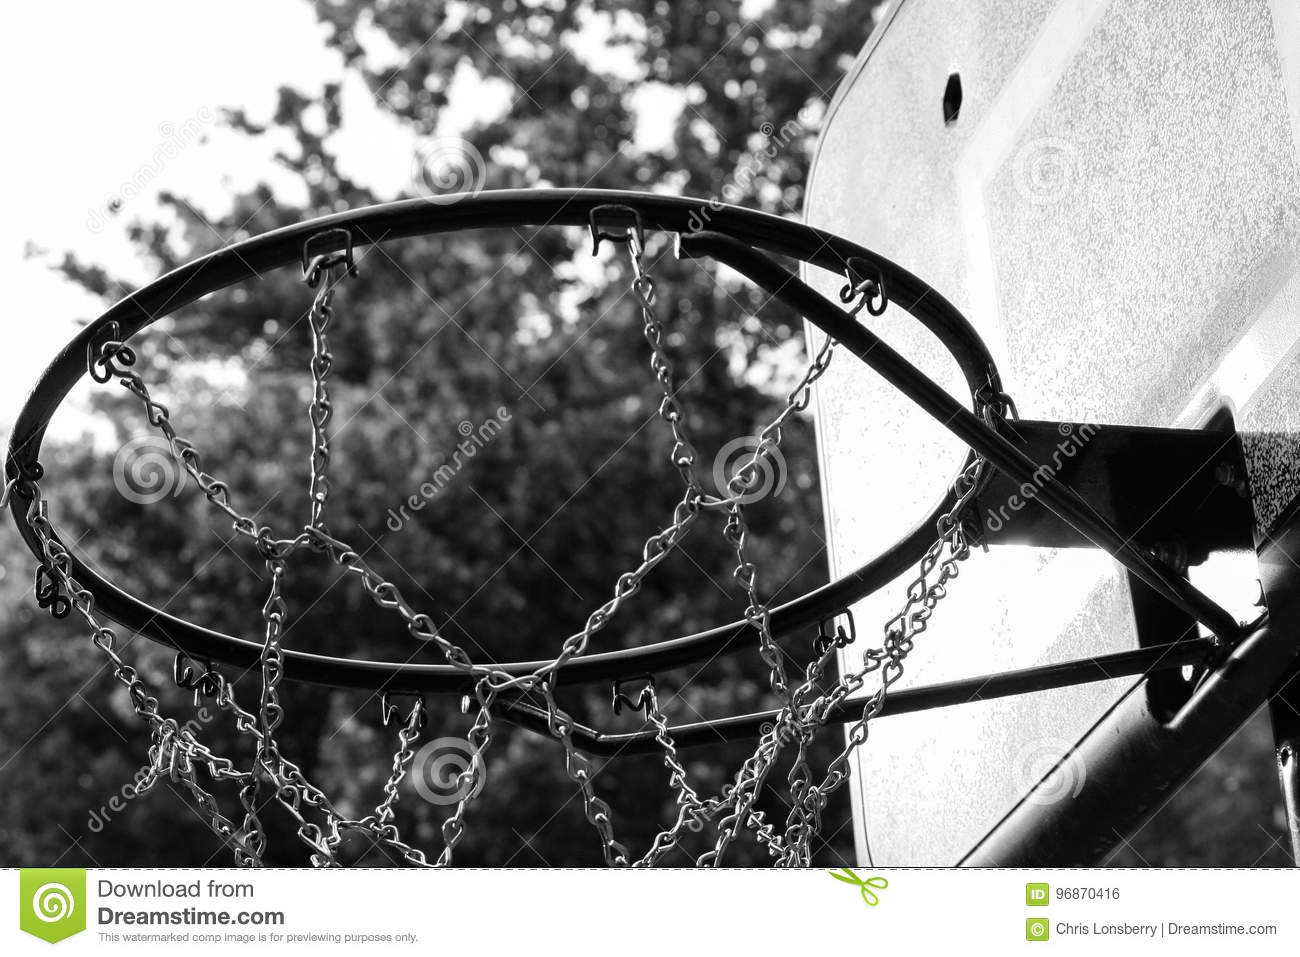 Black and white close up of basketball hoop